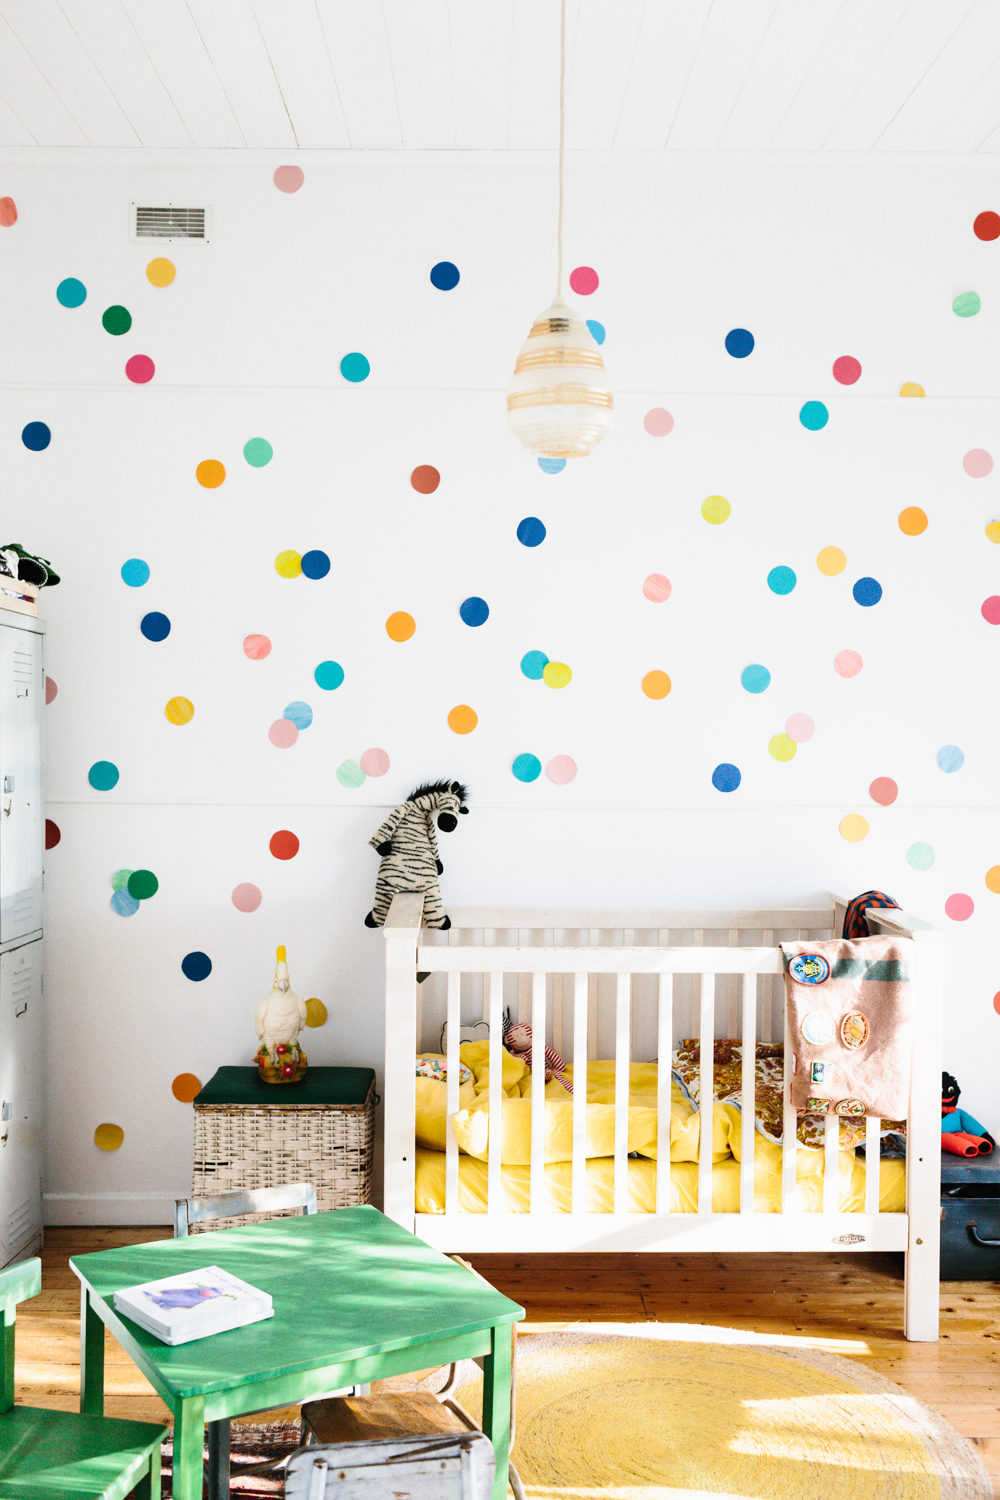 12 Inspiring Accent Walls Created With Only Decor Design*Sponge